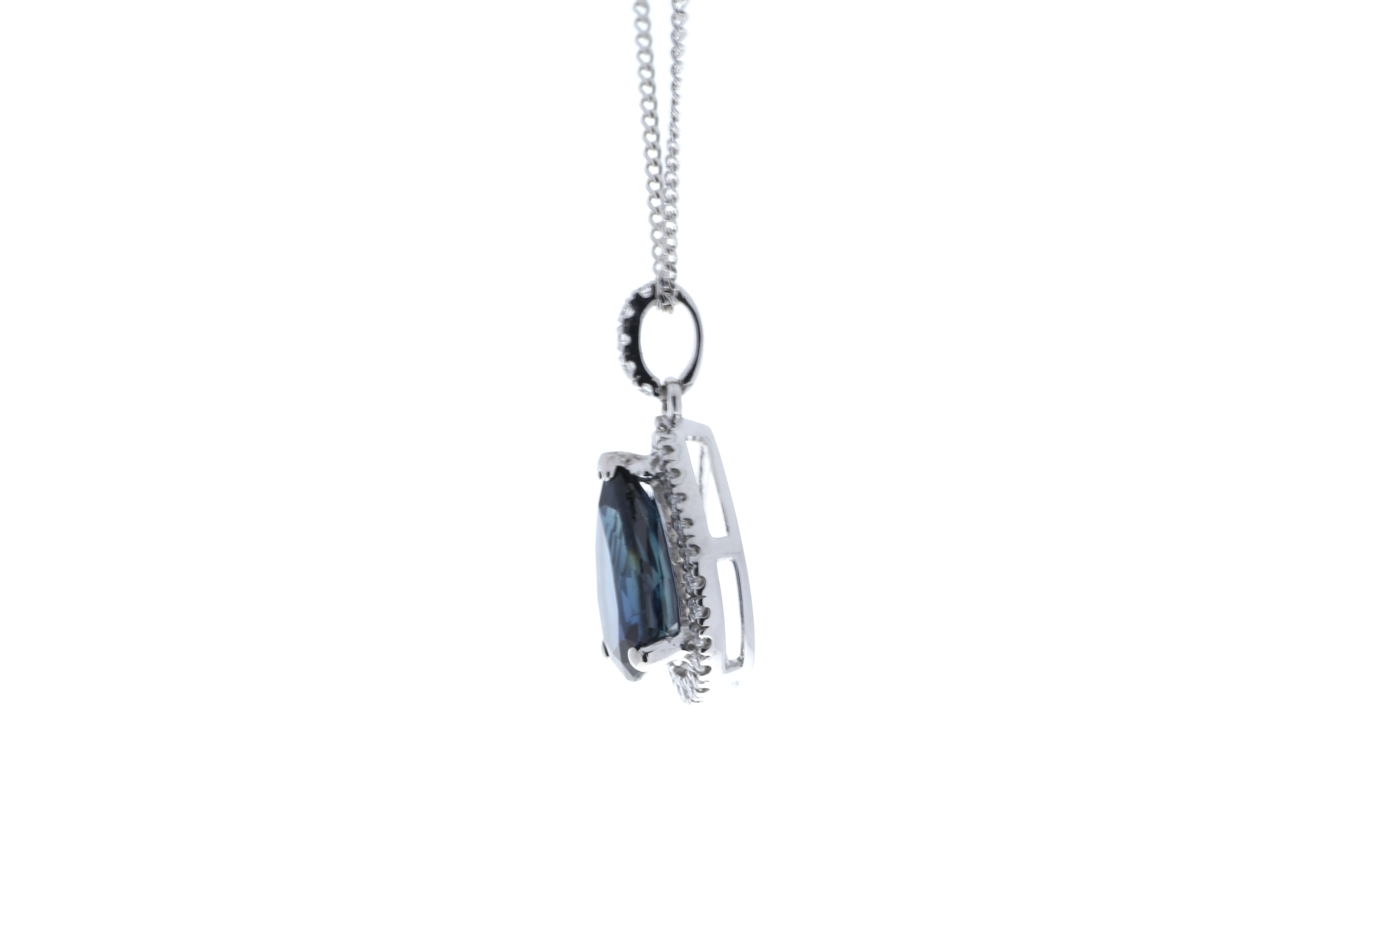 18ct White Gold Diamond And Sapphire Pendant 2.35 Carats - Image 4 of 4